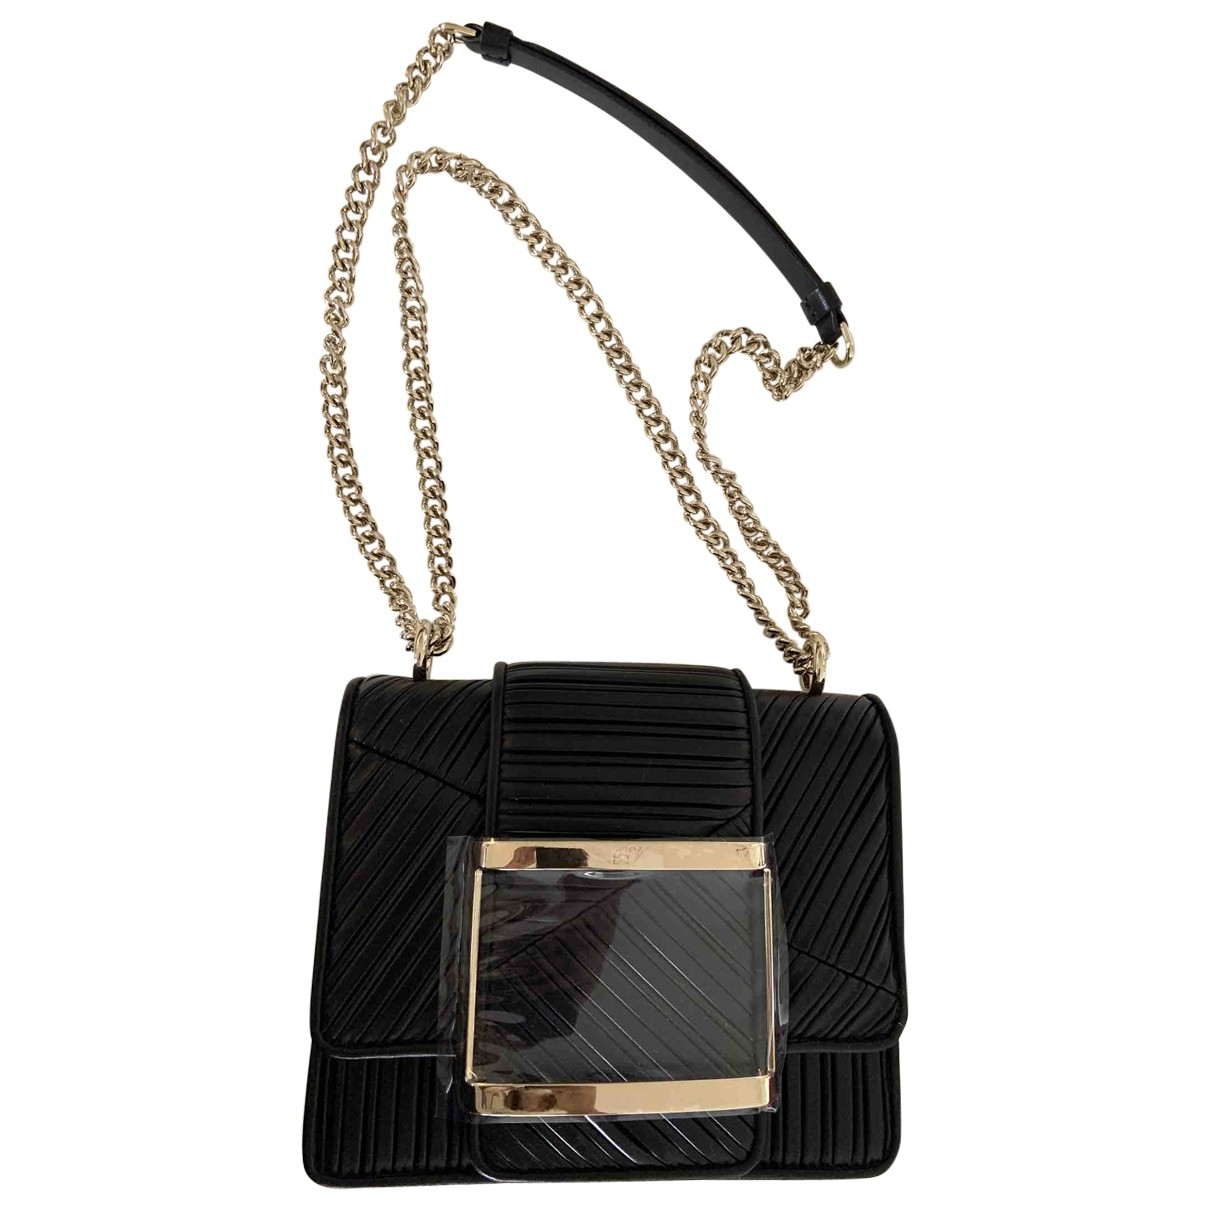 Roger Vivier \N Black Leather handbag for Women \N